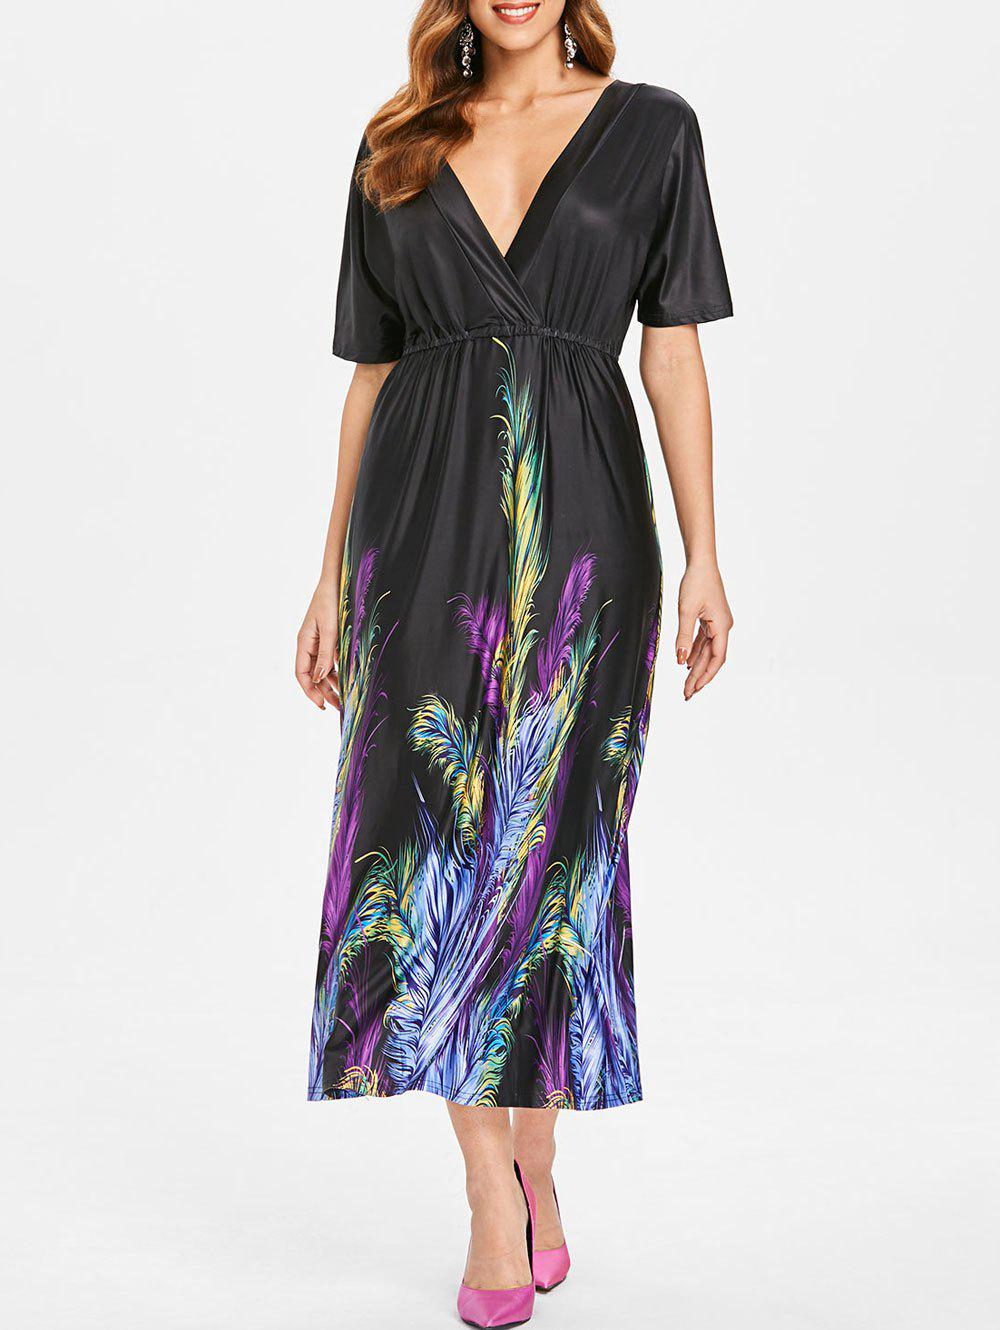 Chic Plunge Neck Feather Print Dress